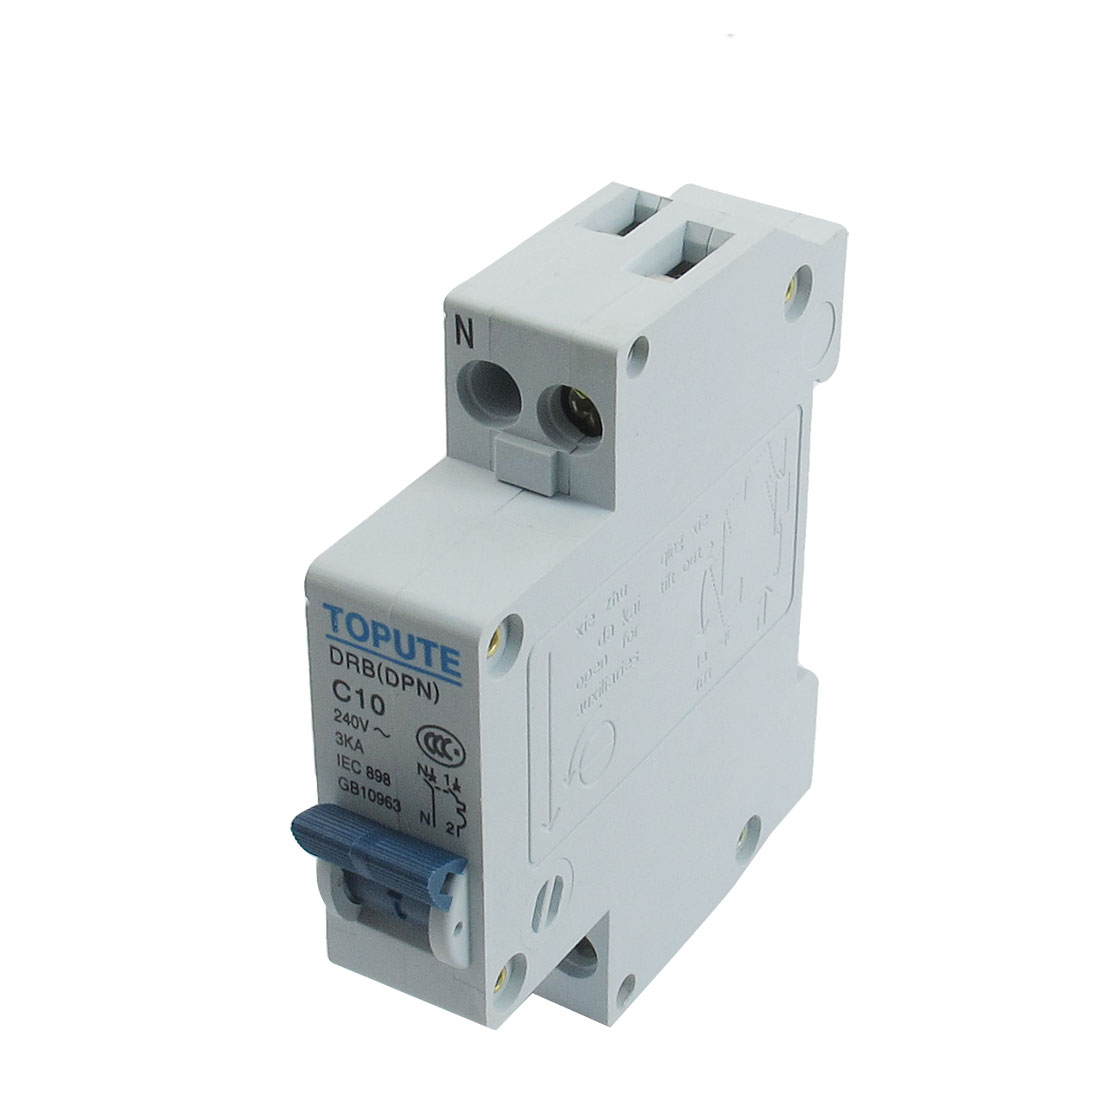 DIN Rail Mount 1P+N AC 240V 10A Overload Protection Circuit Breaker